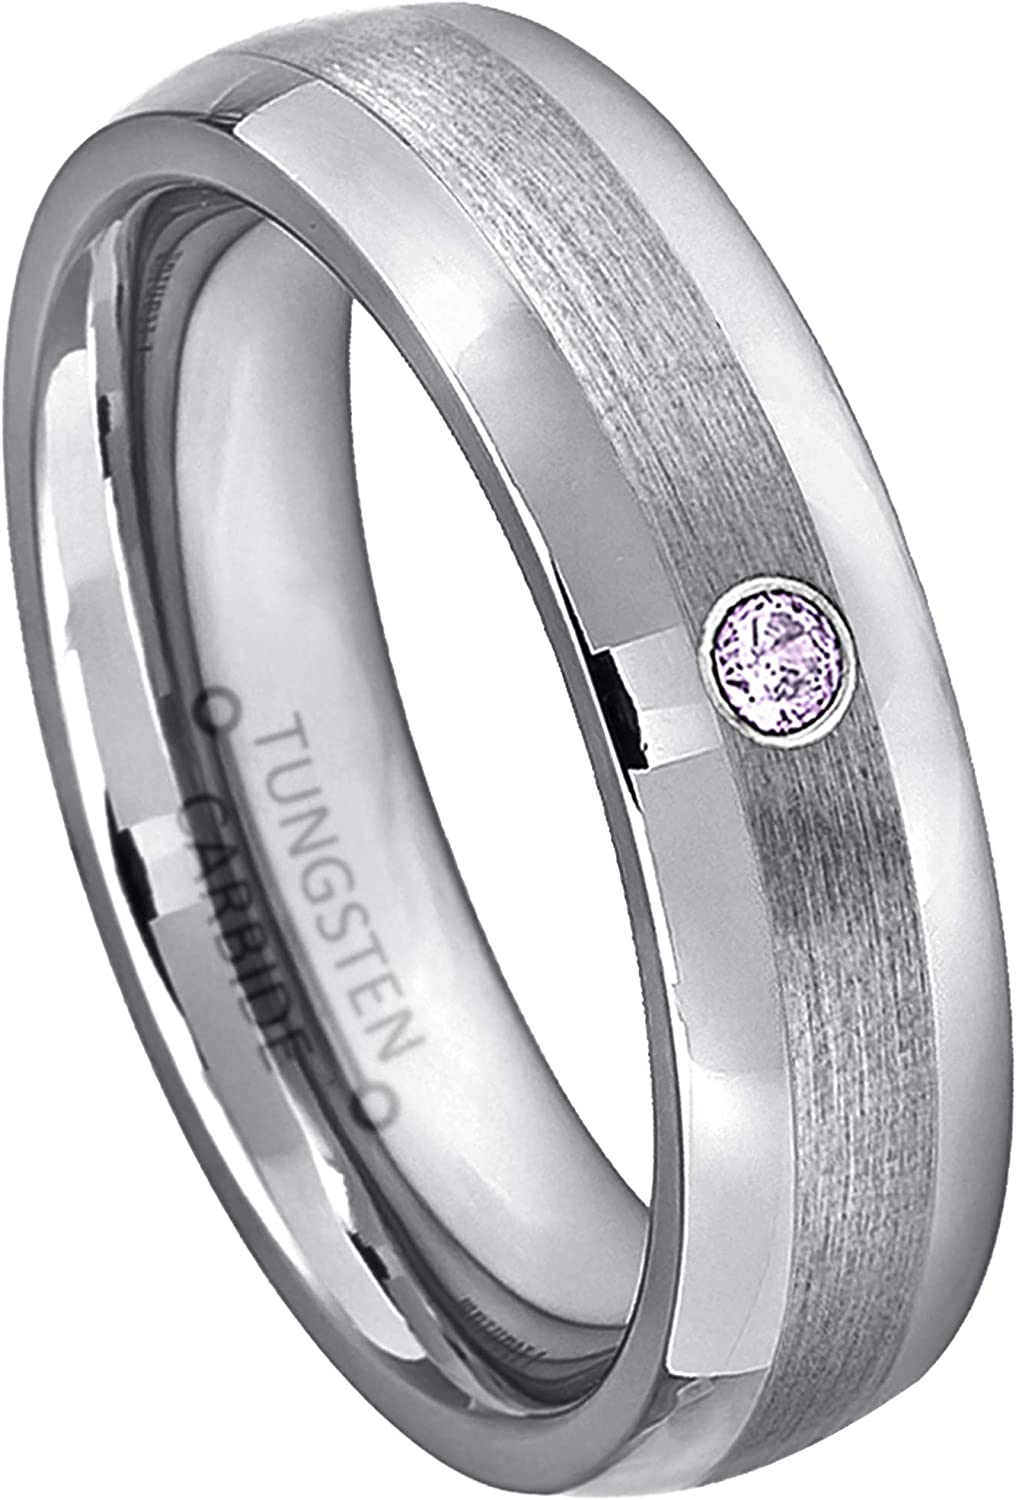 Jewelry Avalanche Max 55% OFF 0.07ct Amethyst Tungsten Los Angeles Mall February - Birth Ring